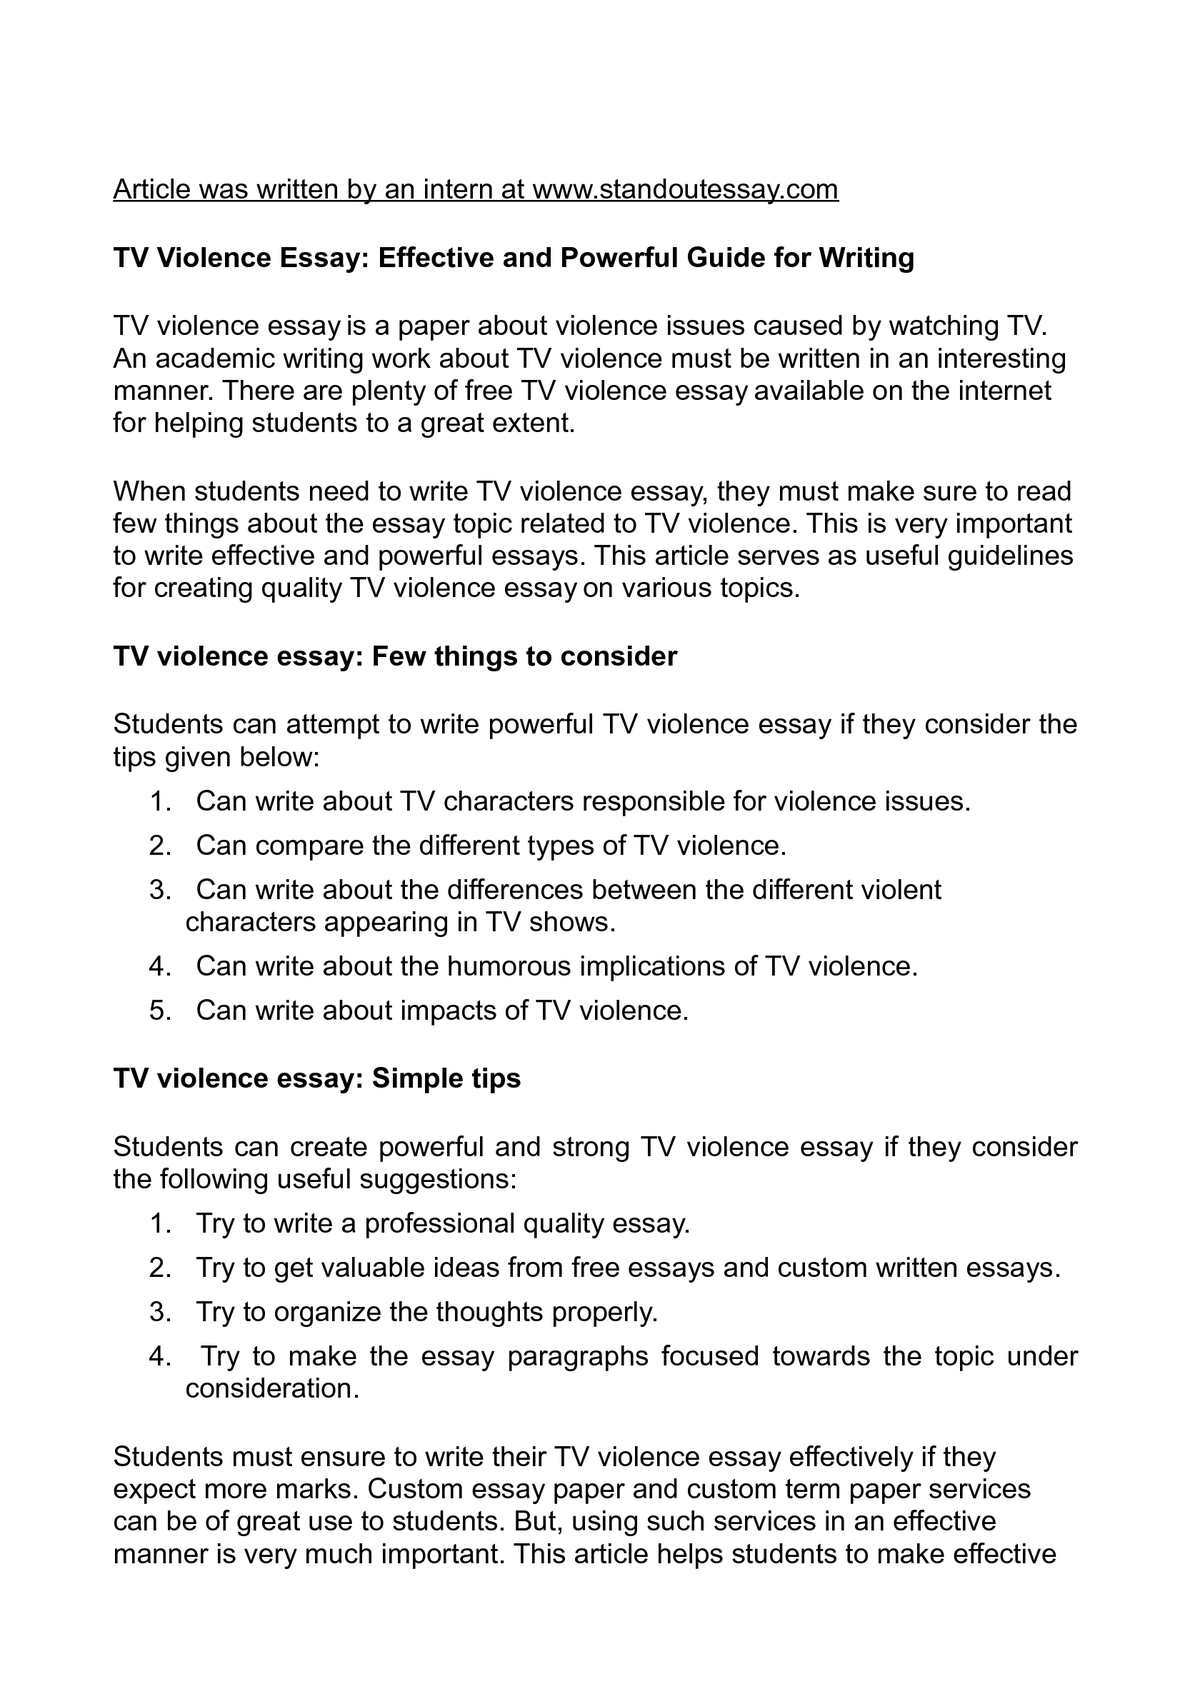 Calaméo - TV Violence Essay: Effective and Powerful Guide for Writing